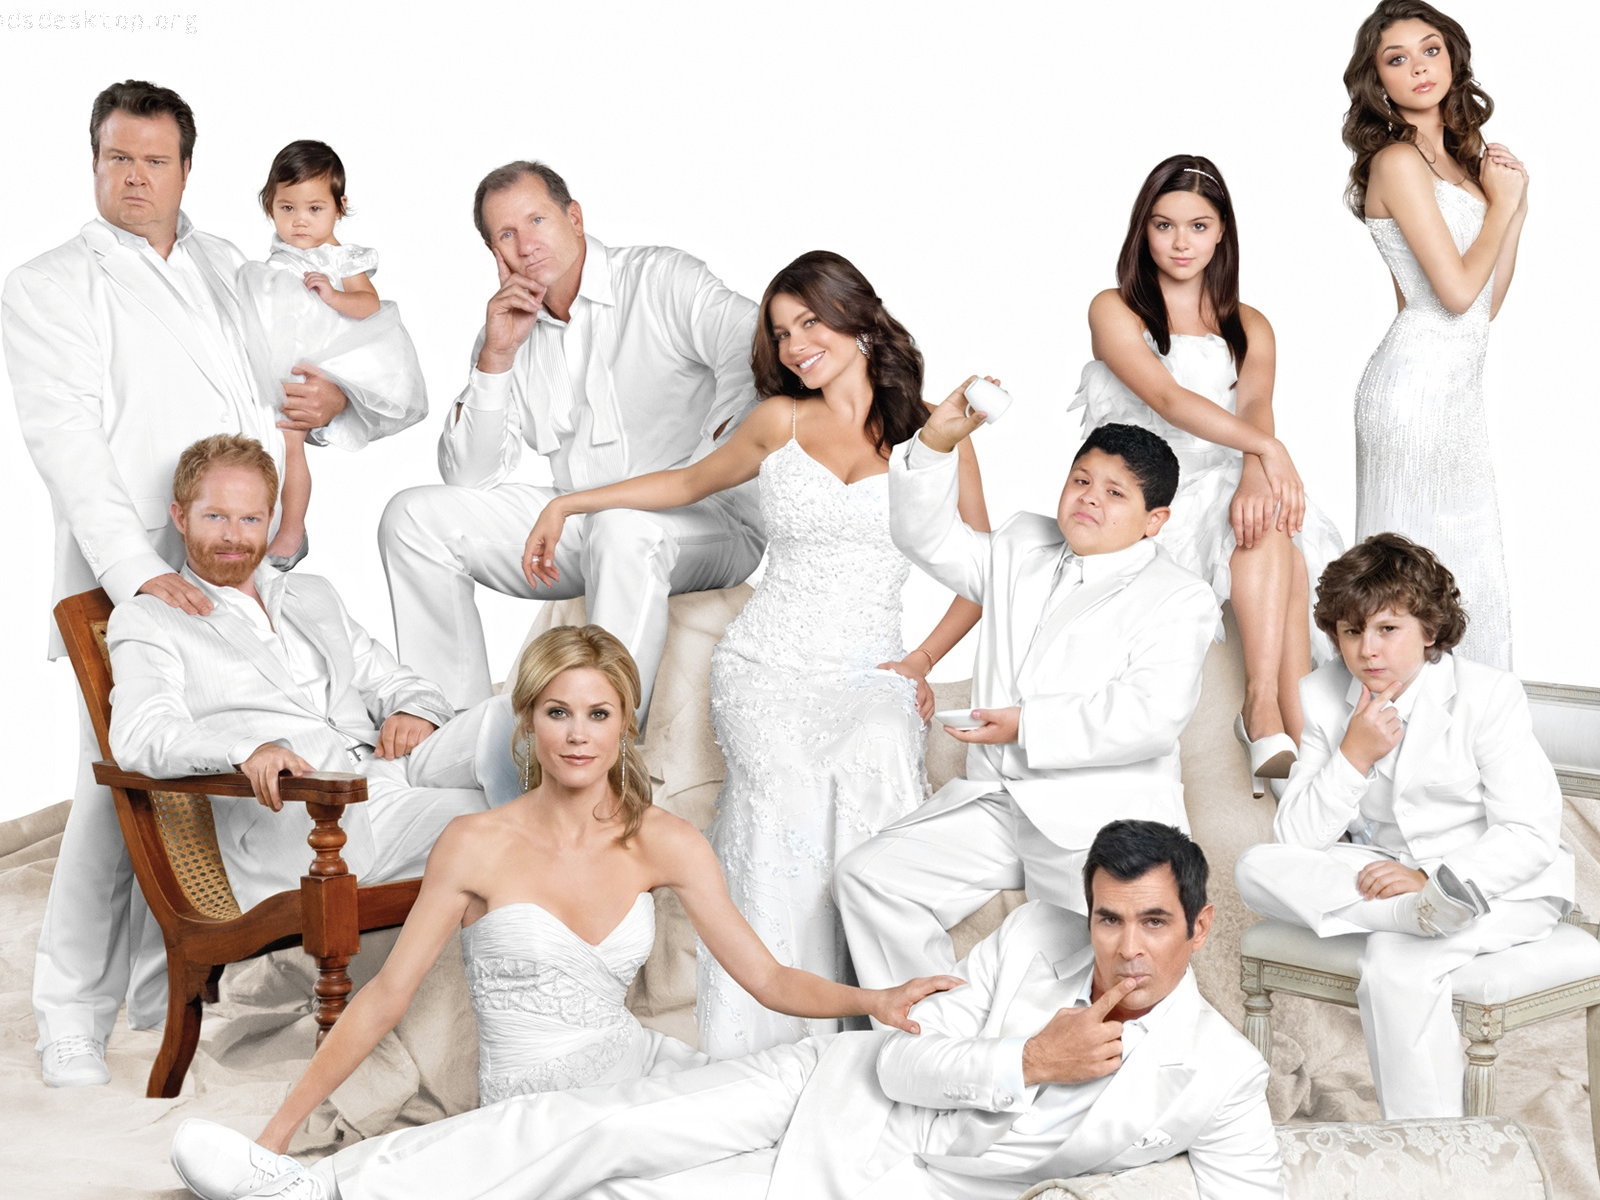 HIMYM, The Big Bang Theory, TV Series, Reckless Roomies TV Series, Crazy Families